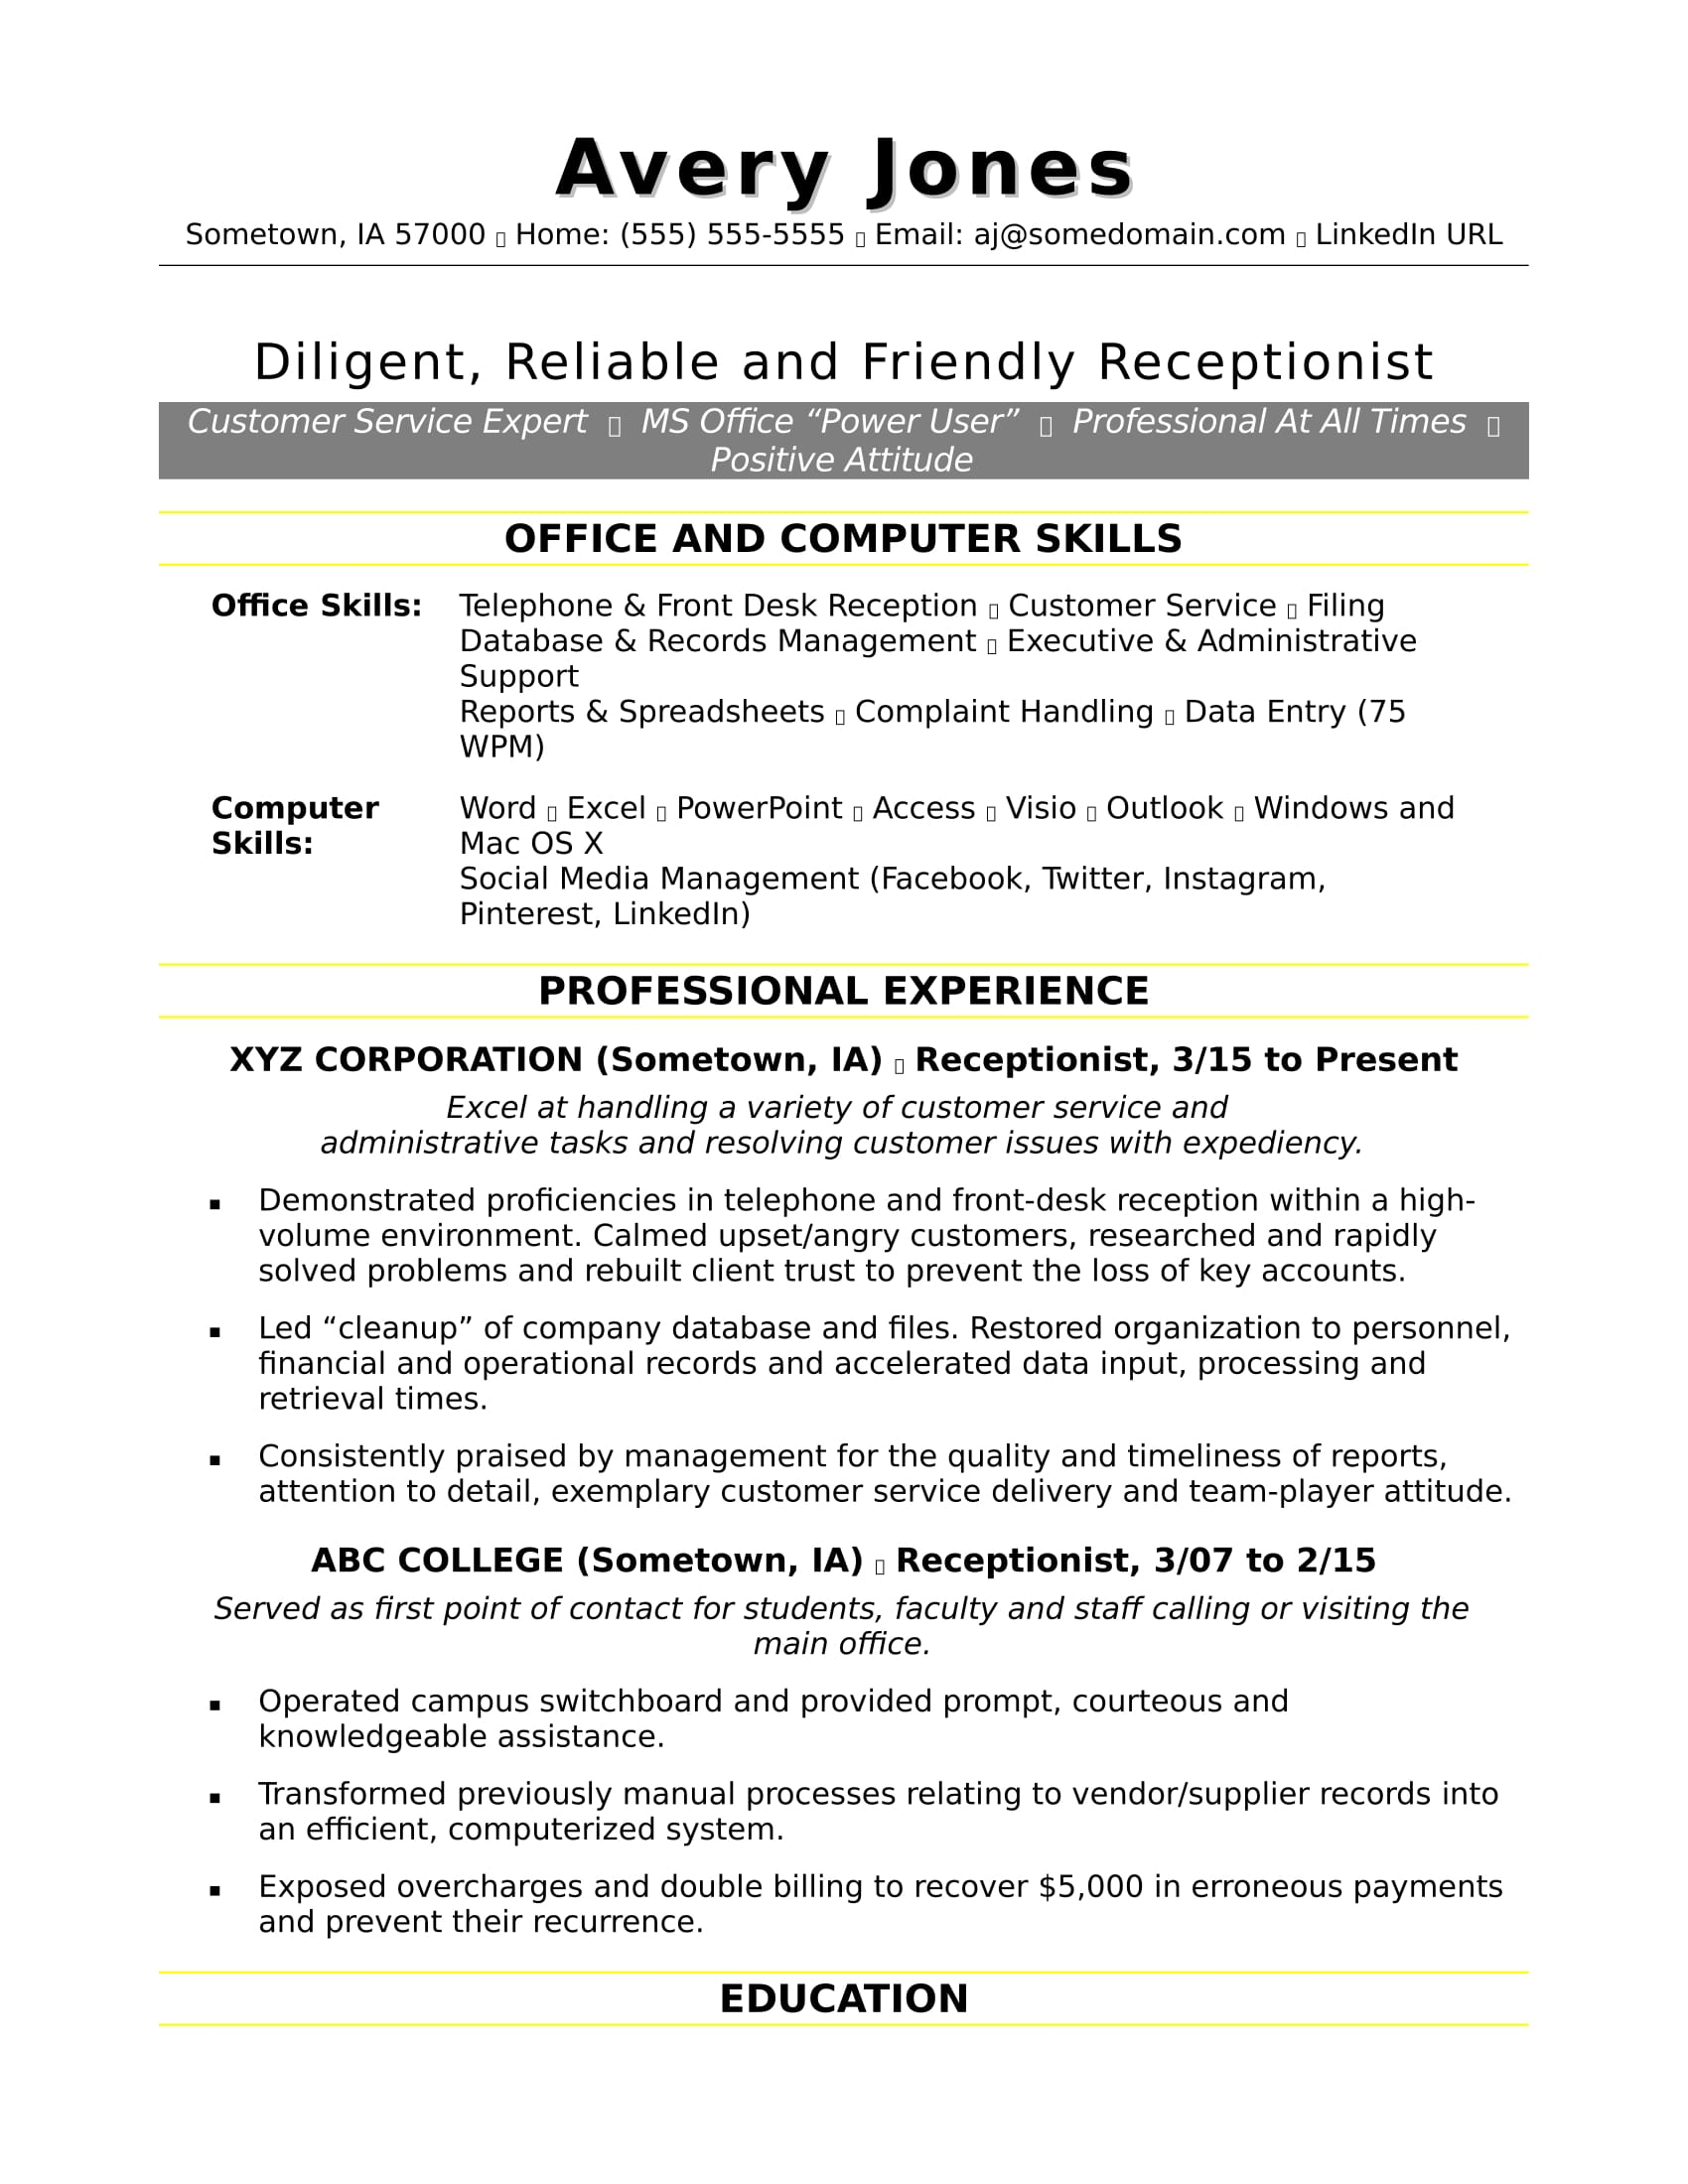 Sample Resume For A Receptionist  Sample Resume Qualifications